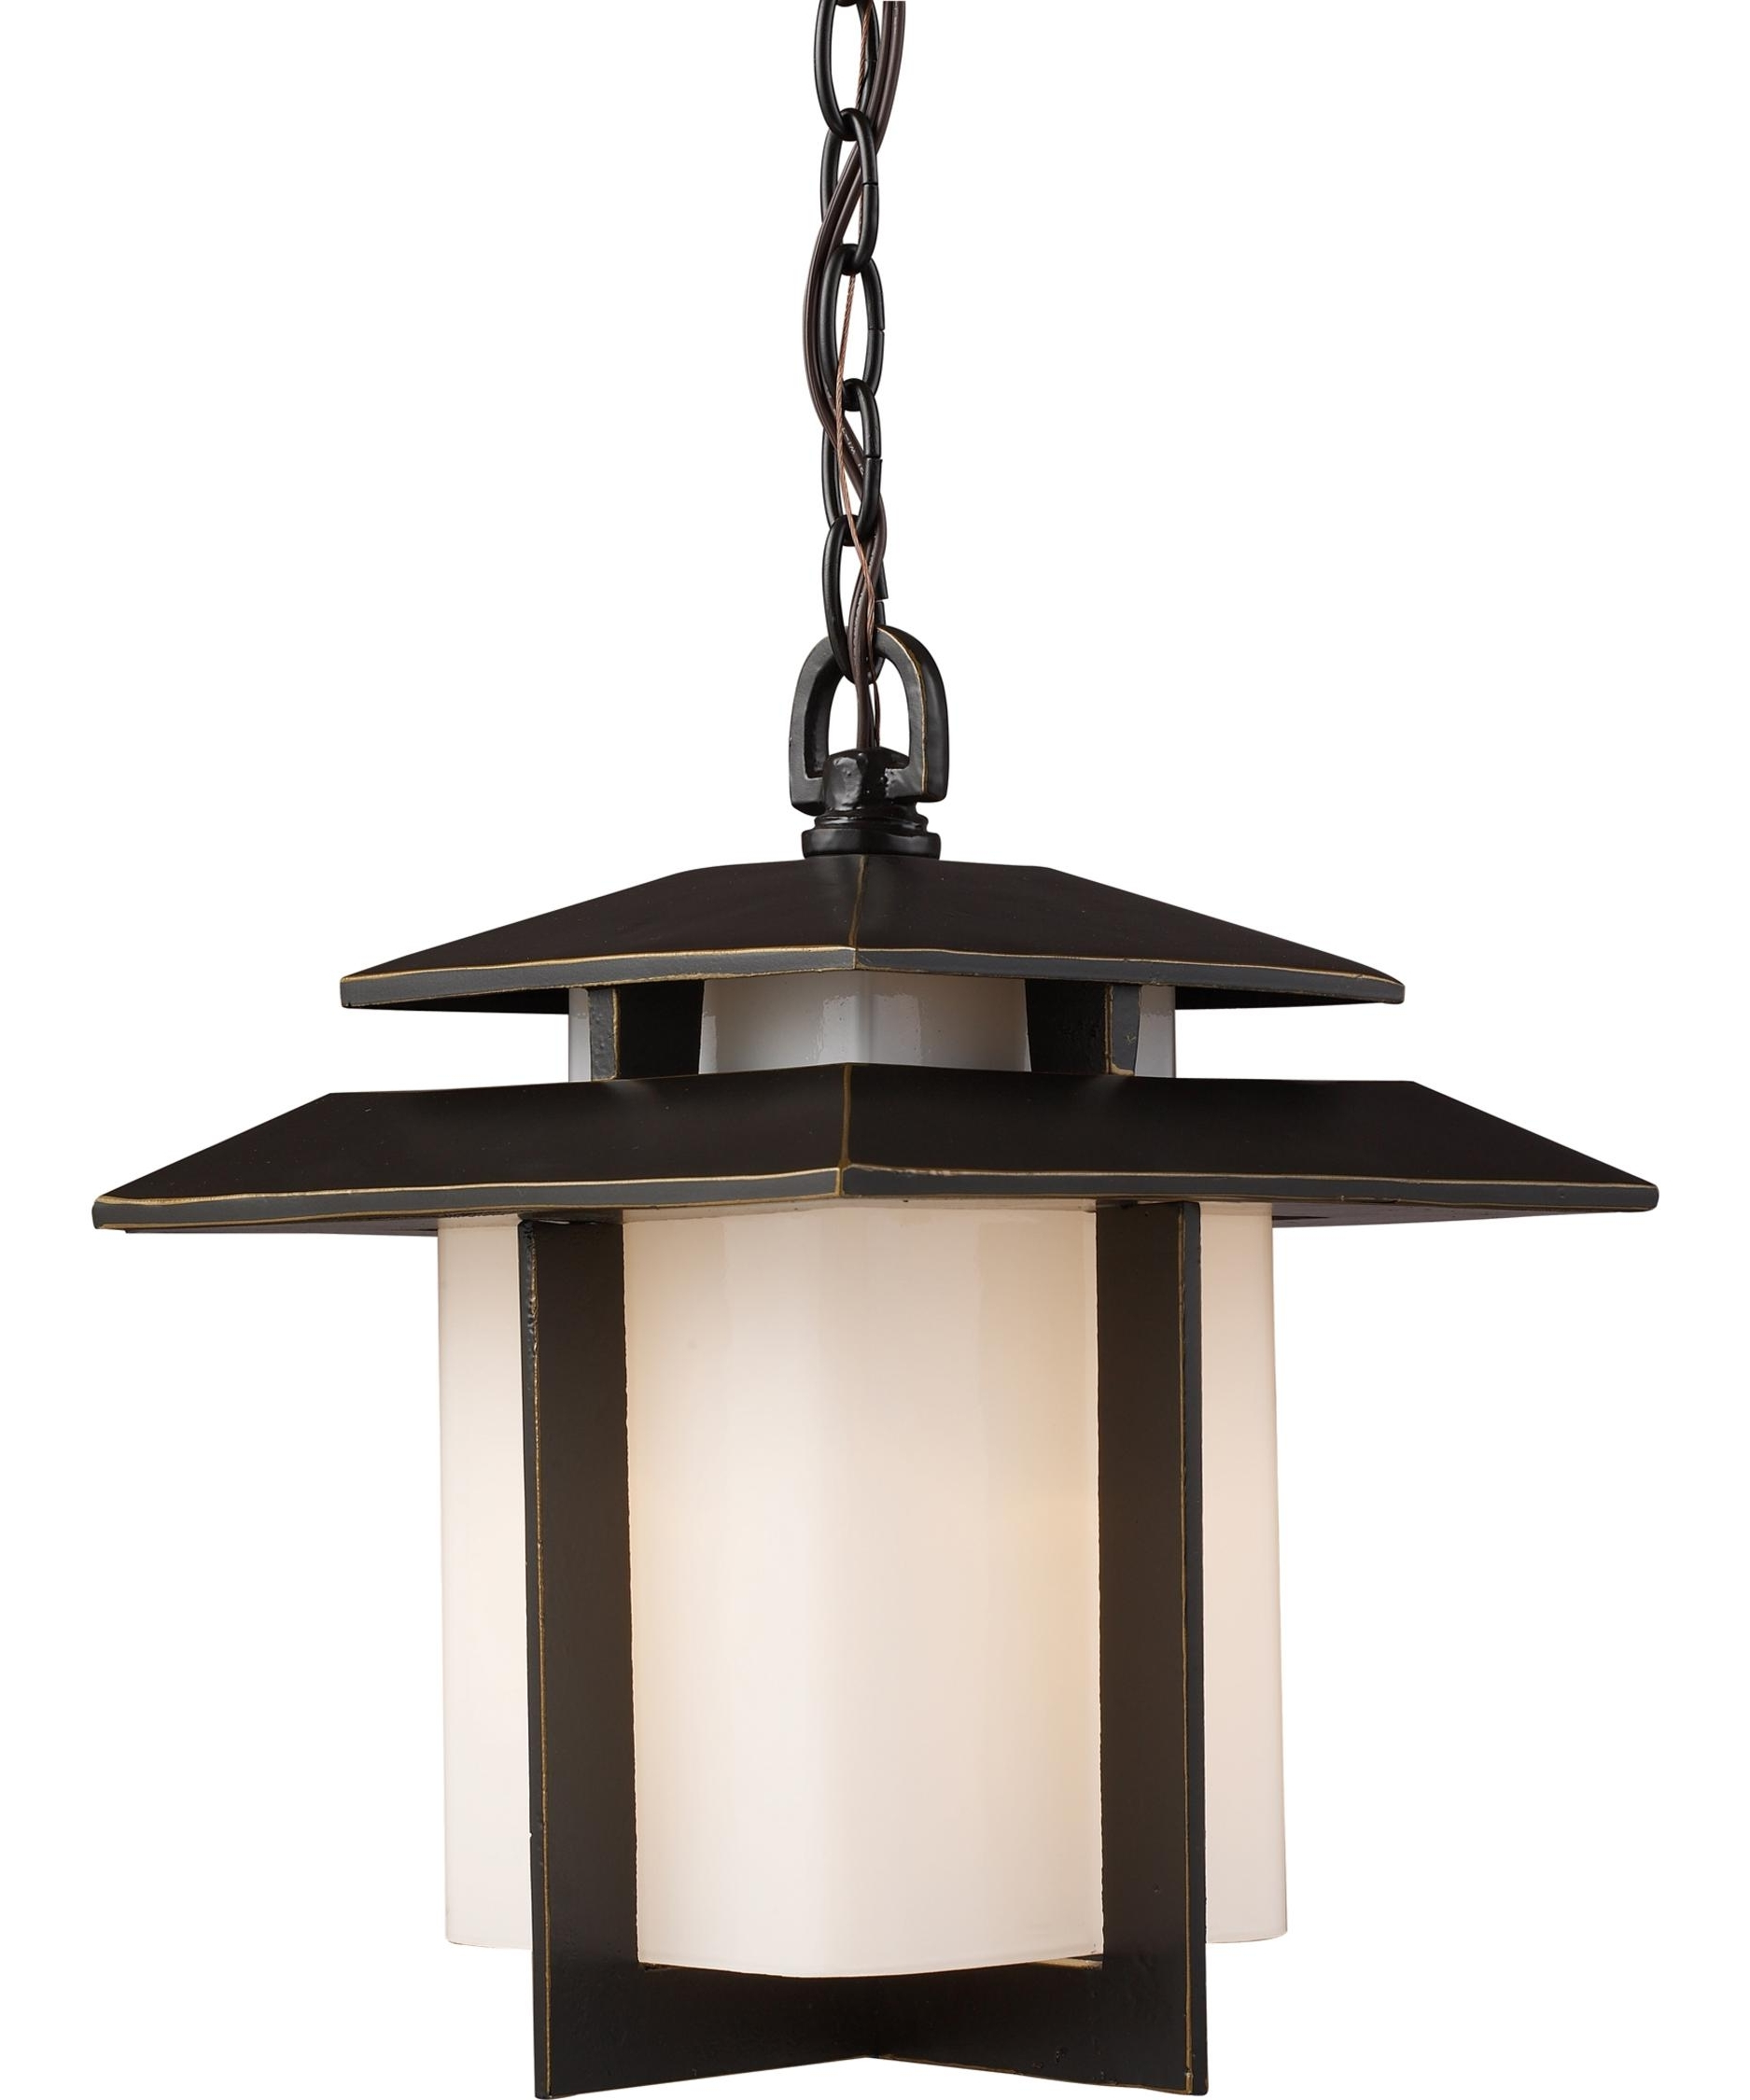 Light : Outdoor Lighting Ideas Without Electricity Exterior Fixtures Throughout Most Popular Modern Outdoor Light Fixtures At Home Depot (View 9 of 20)